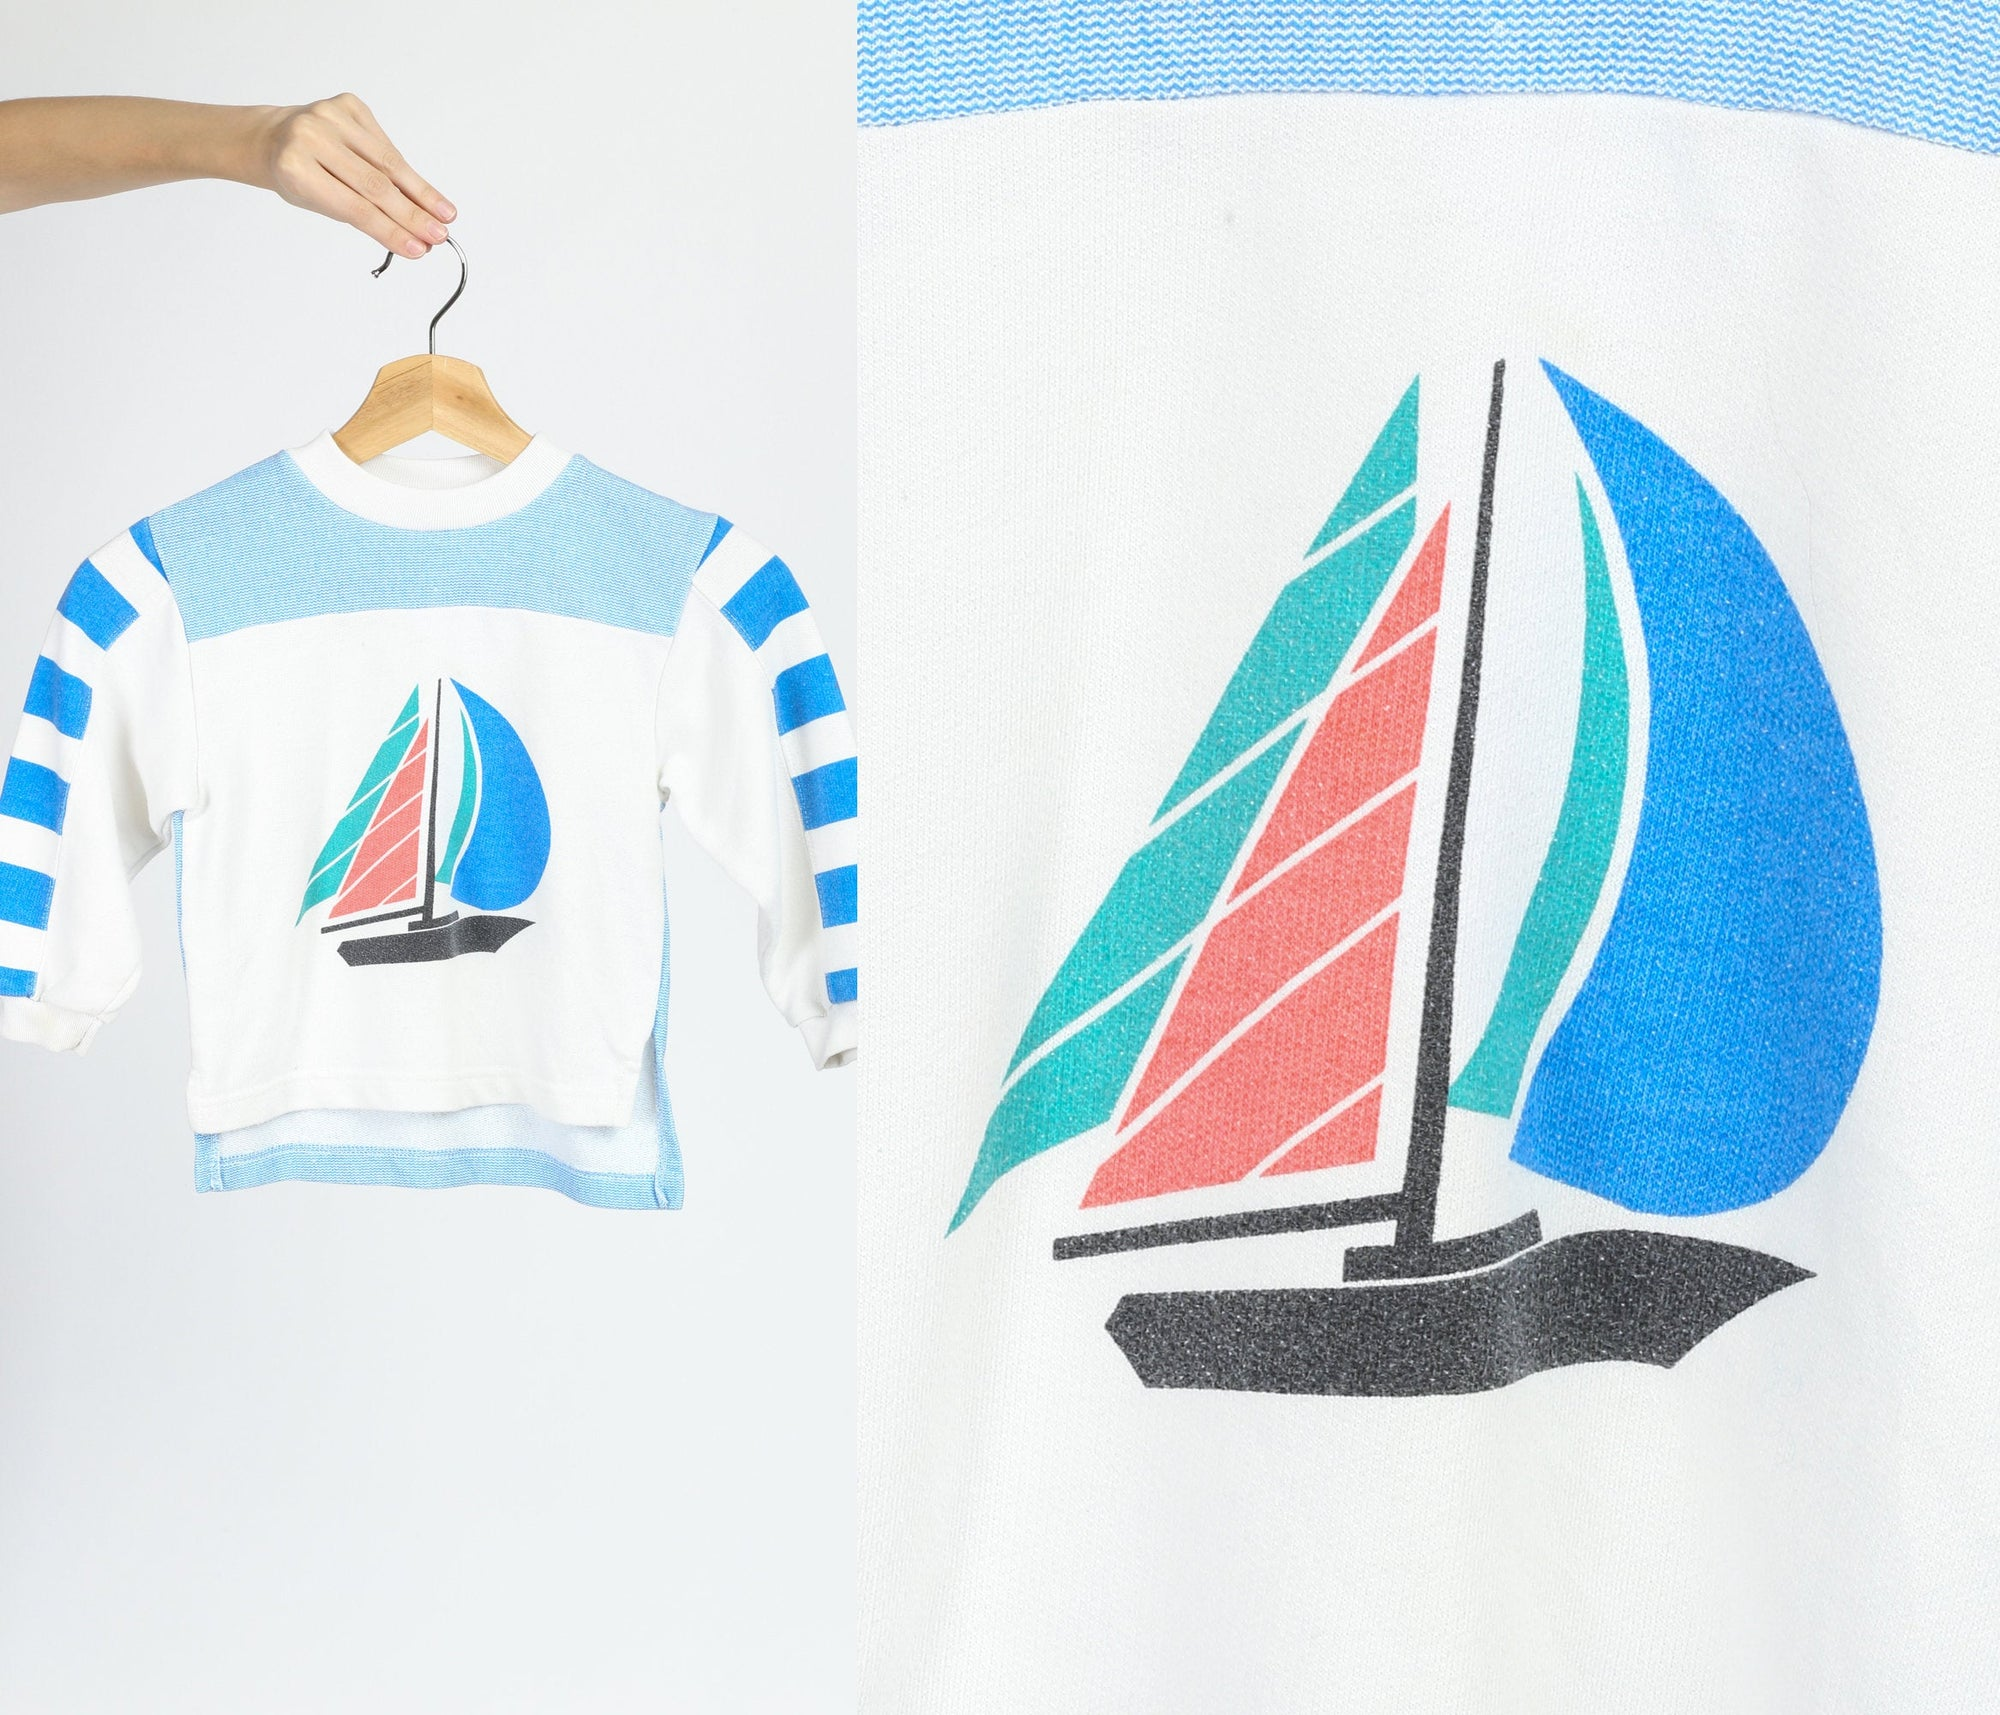 90s Kid's Sailboat Sweatshirt - Small